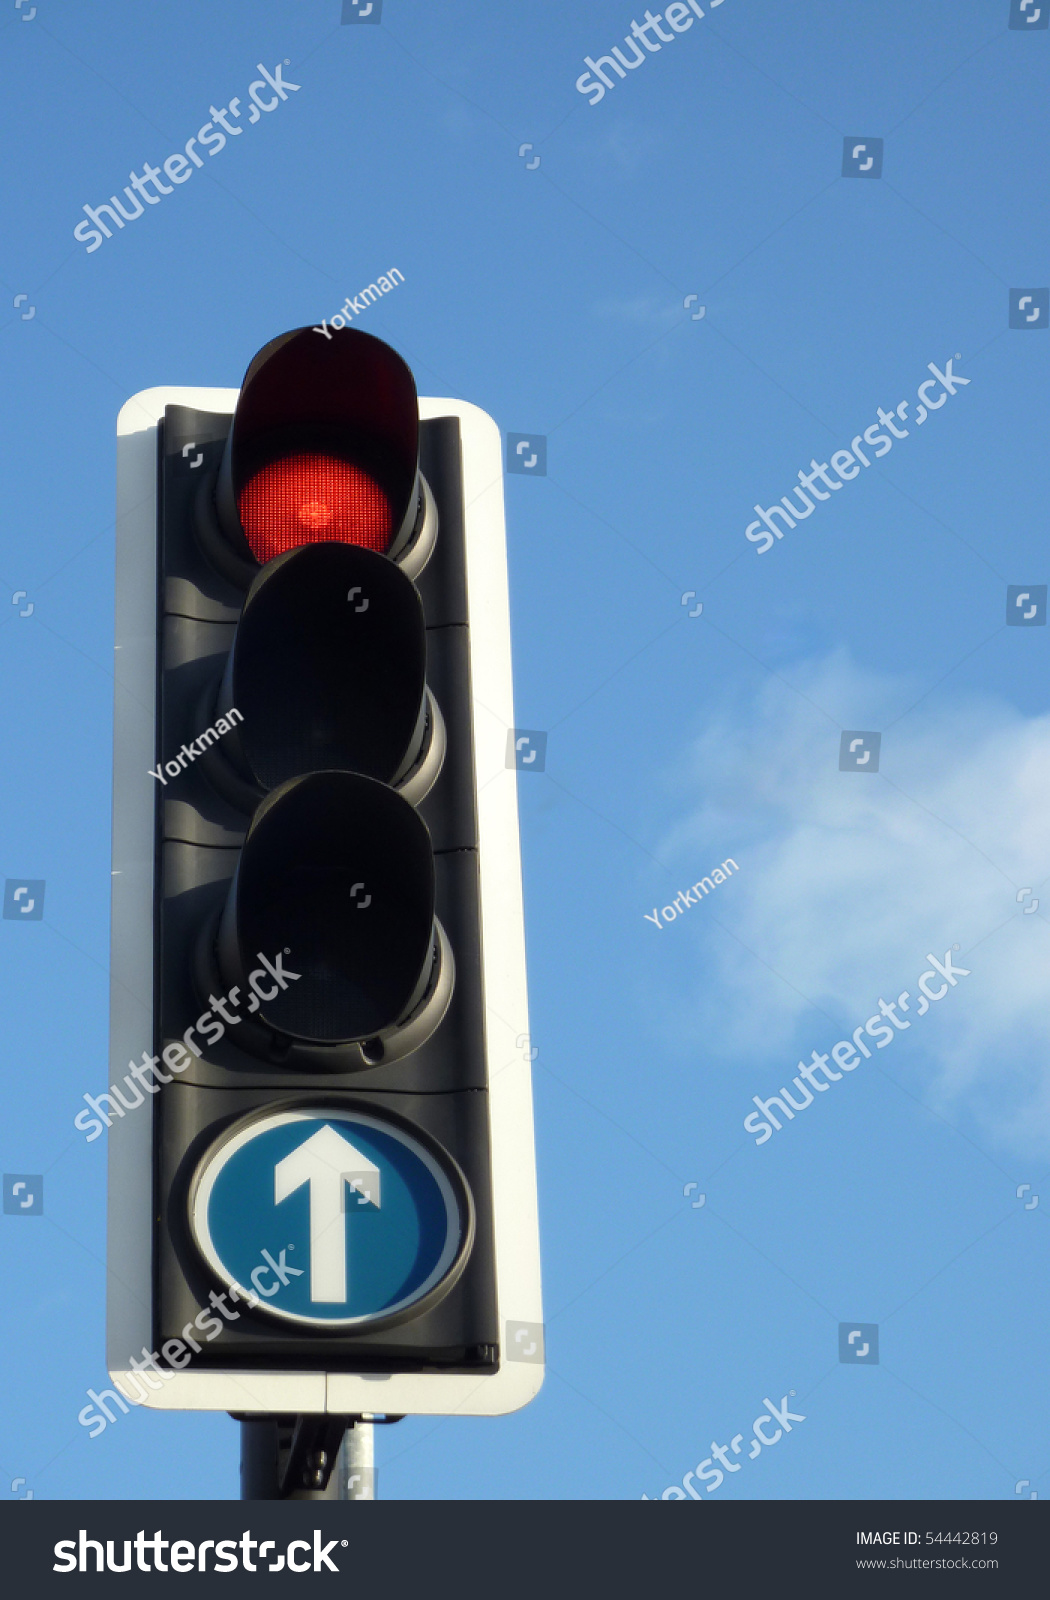 Closeup of red traffic light against blue sky